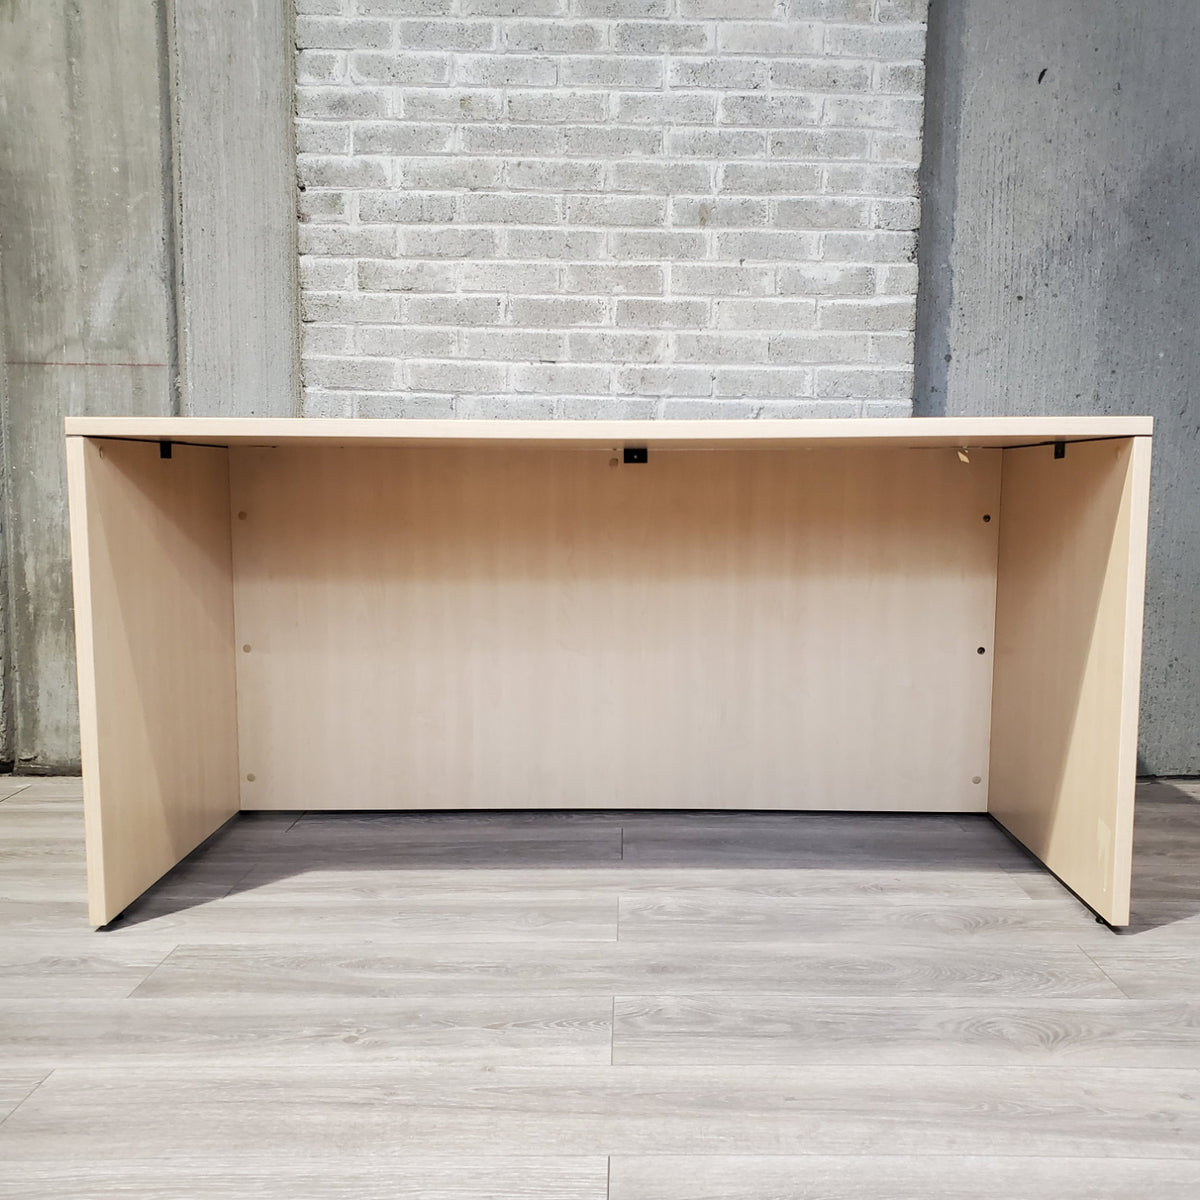 Pre-Owned - Used Maple Laminate Desk, two sizes - Duckys Office Furniture